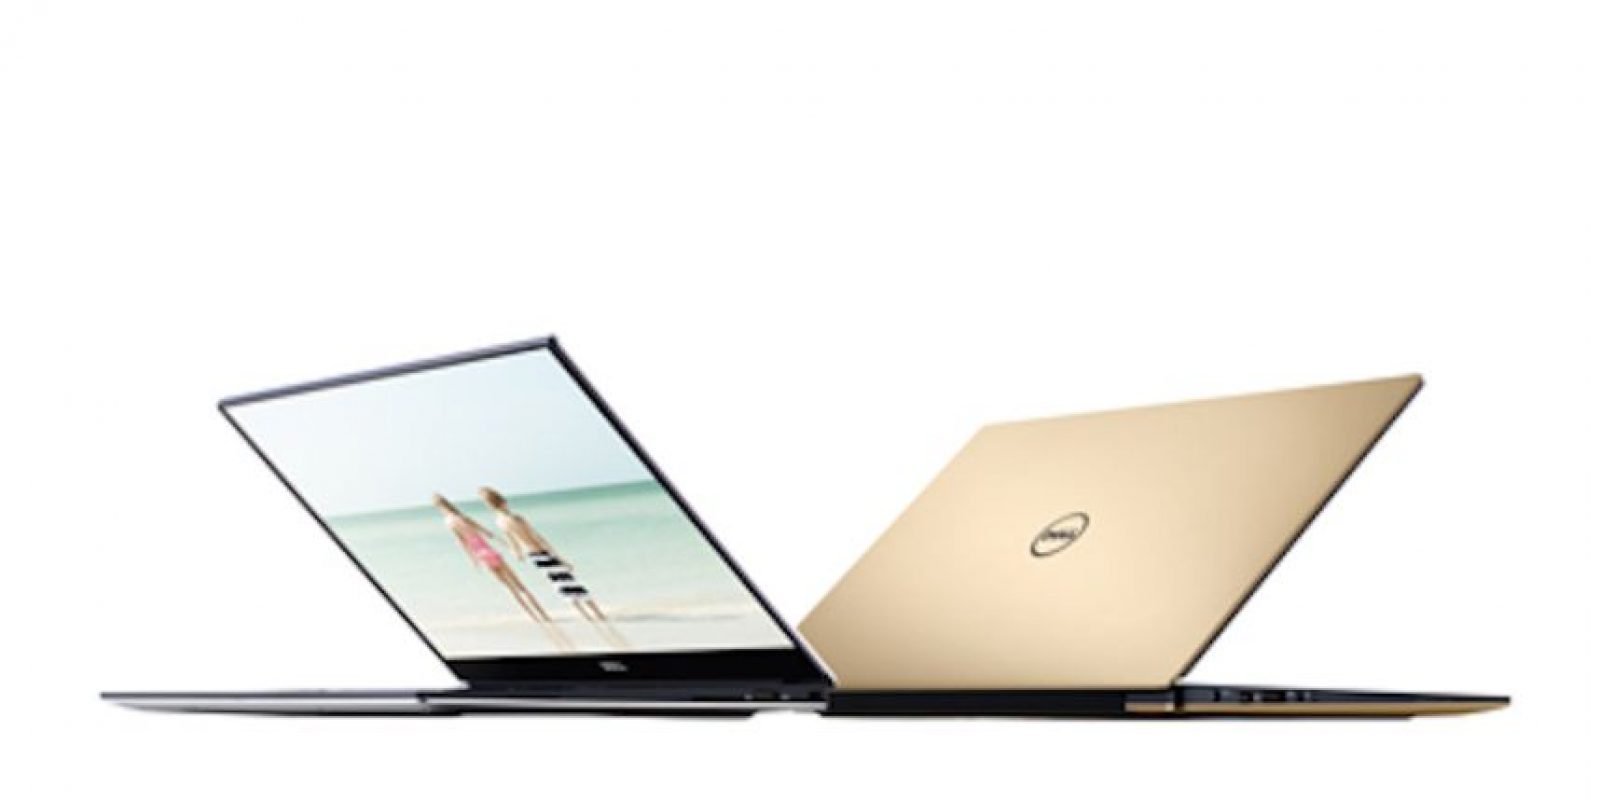 El modelo edición limitada XPS 13 de Dell de oro causó furor en China por su semejanza con el MacBook Air de Apple Foto: Dell